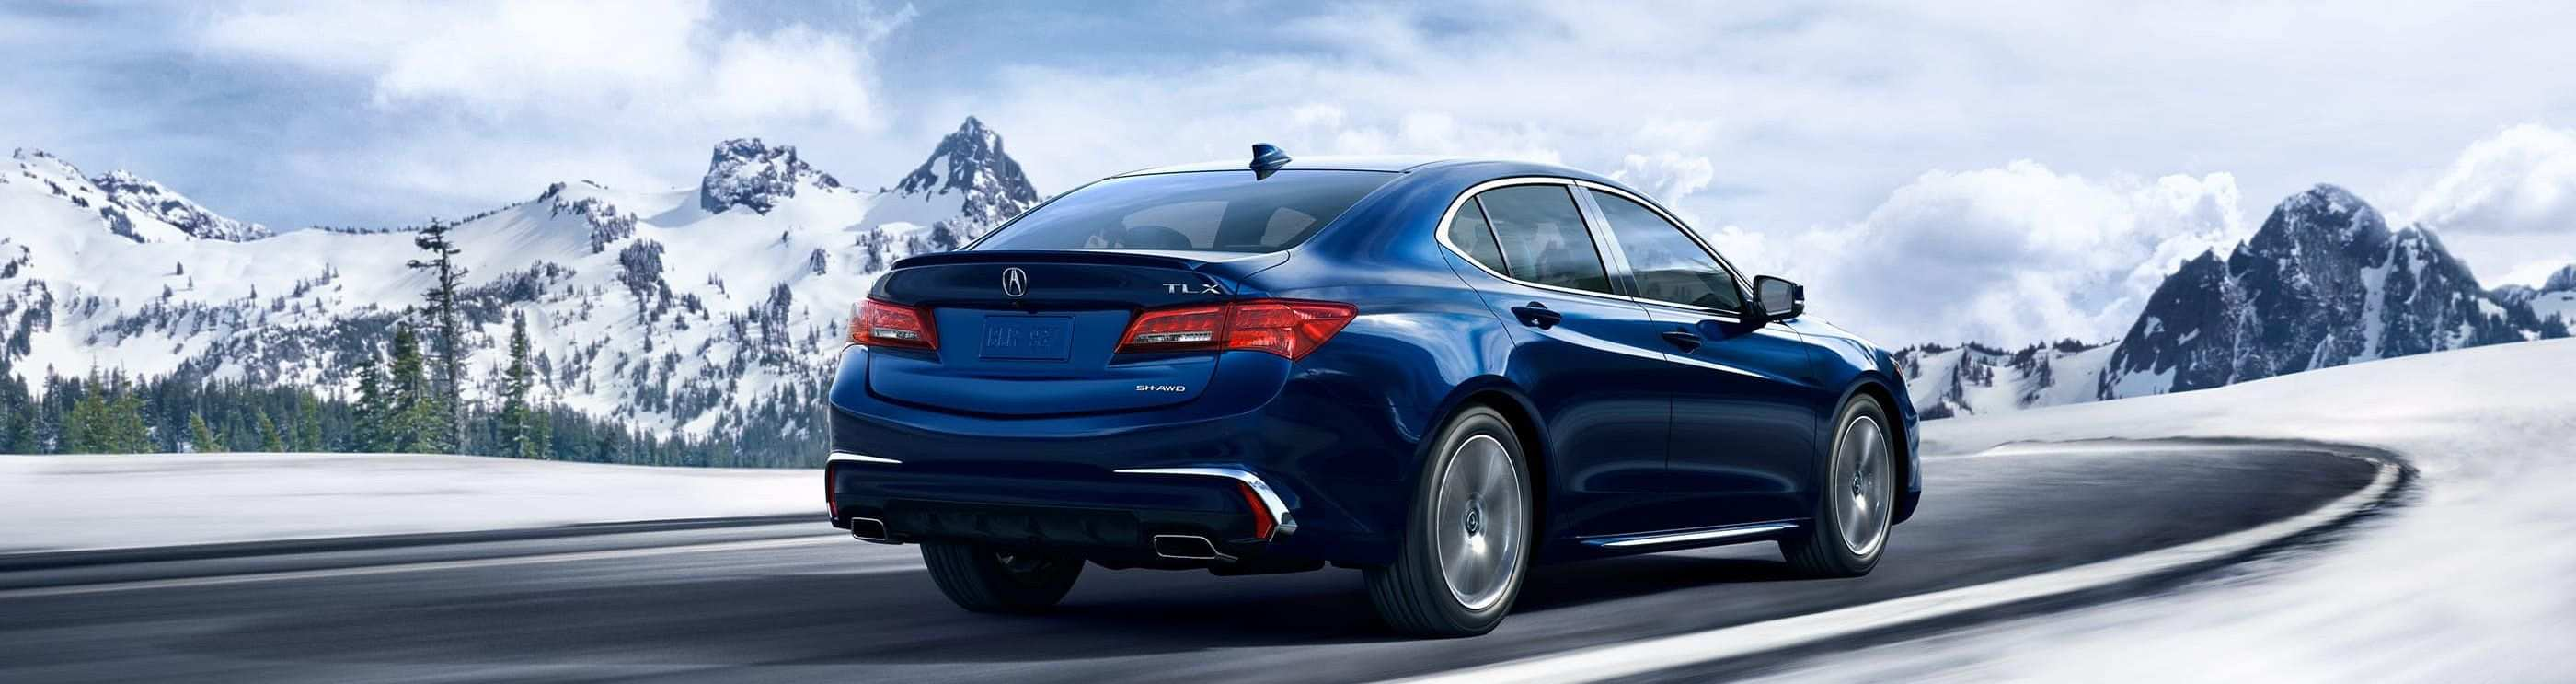 78 All New Acura Tlx 2020 Lease New Review for Acura Tlx 2020 Lease